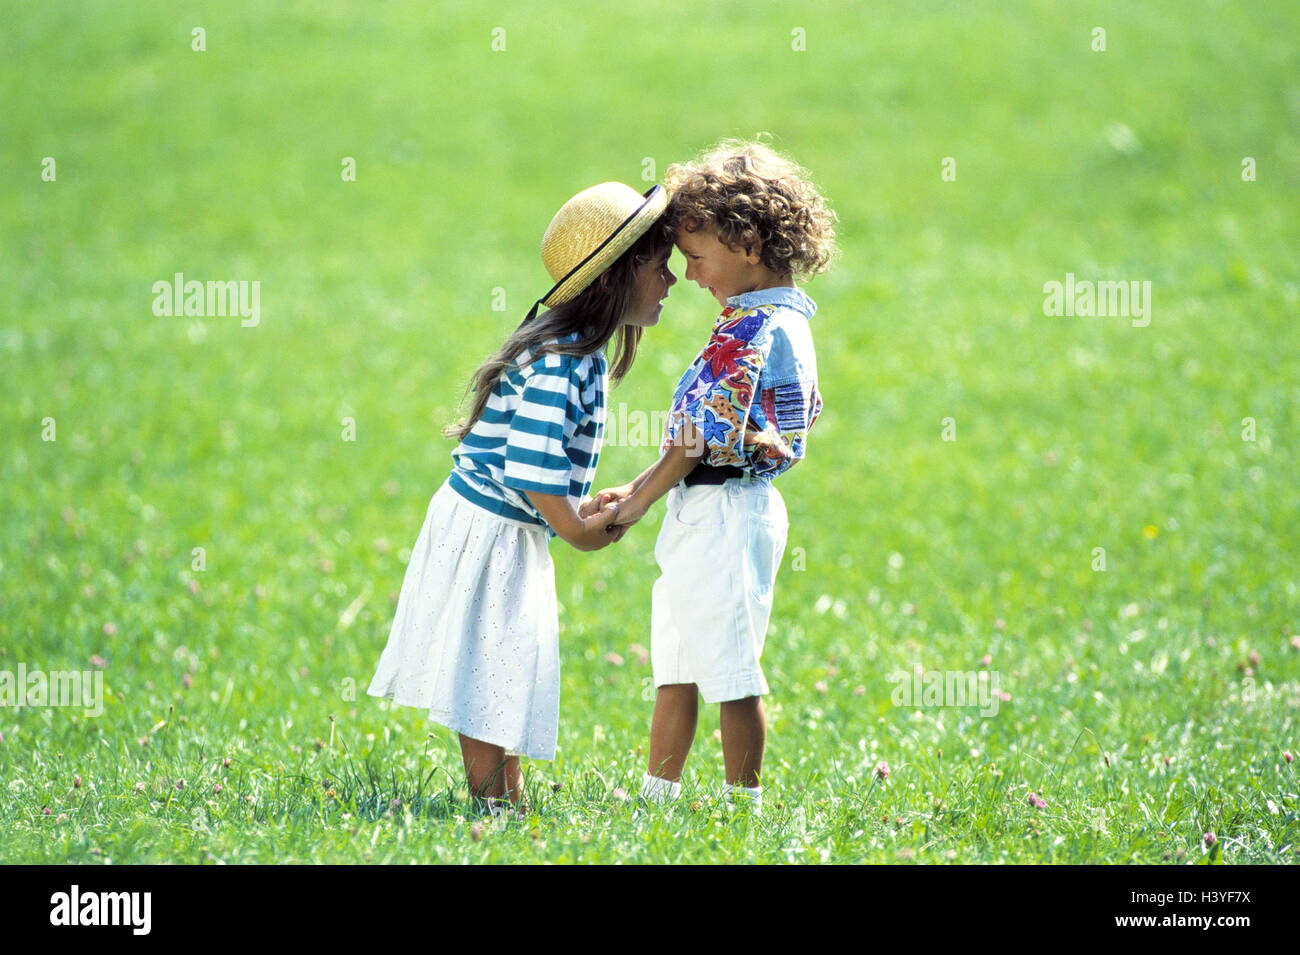 Meadow, girl, boy, hands hold, eye contact, outside, children, two, comradeship, affection, friends, friendship, - Stock Image